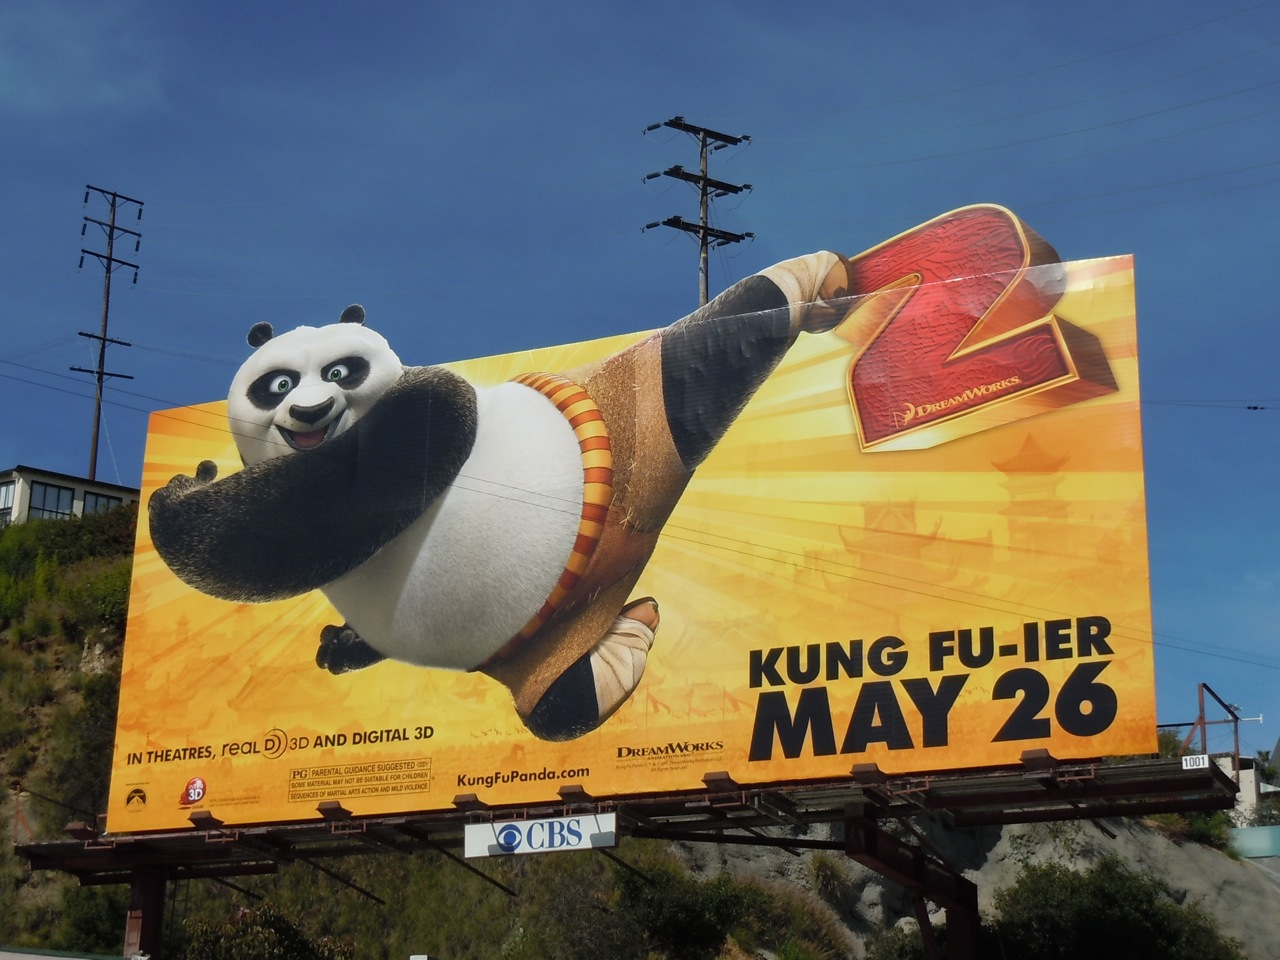 Daily Billboard can\u0027t imagine Jack Black ever being able to strike a pose like this in real life, so it\u0027s lucky his cuddly alter ego, \u0027Po the Panda\u0027, ...